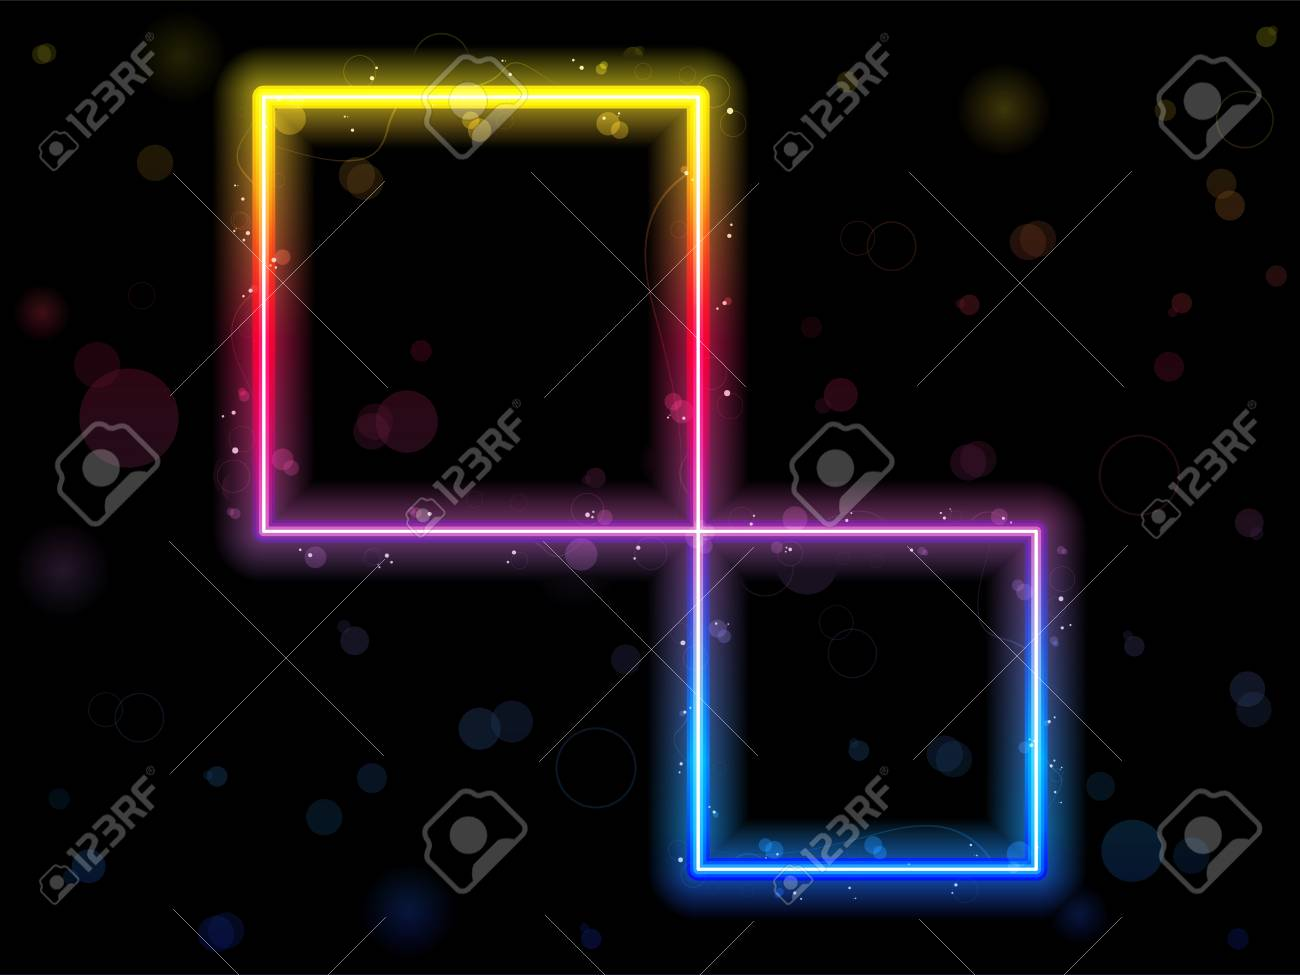 Rainbow Square Border with Sparkles and Swirls. Stock Vector - 7474272